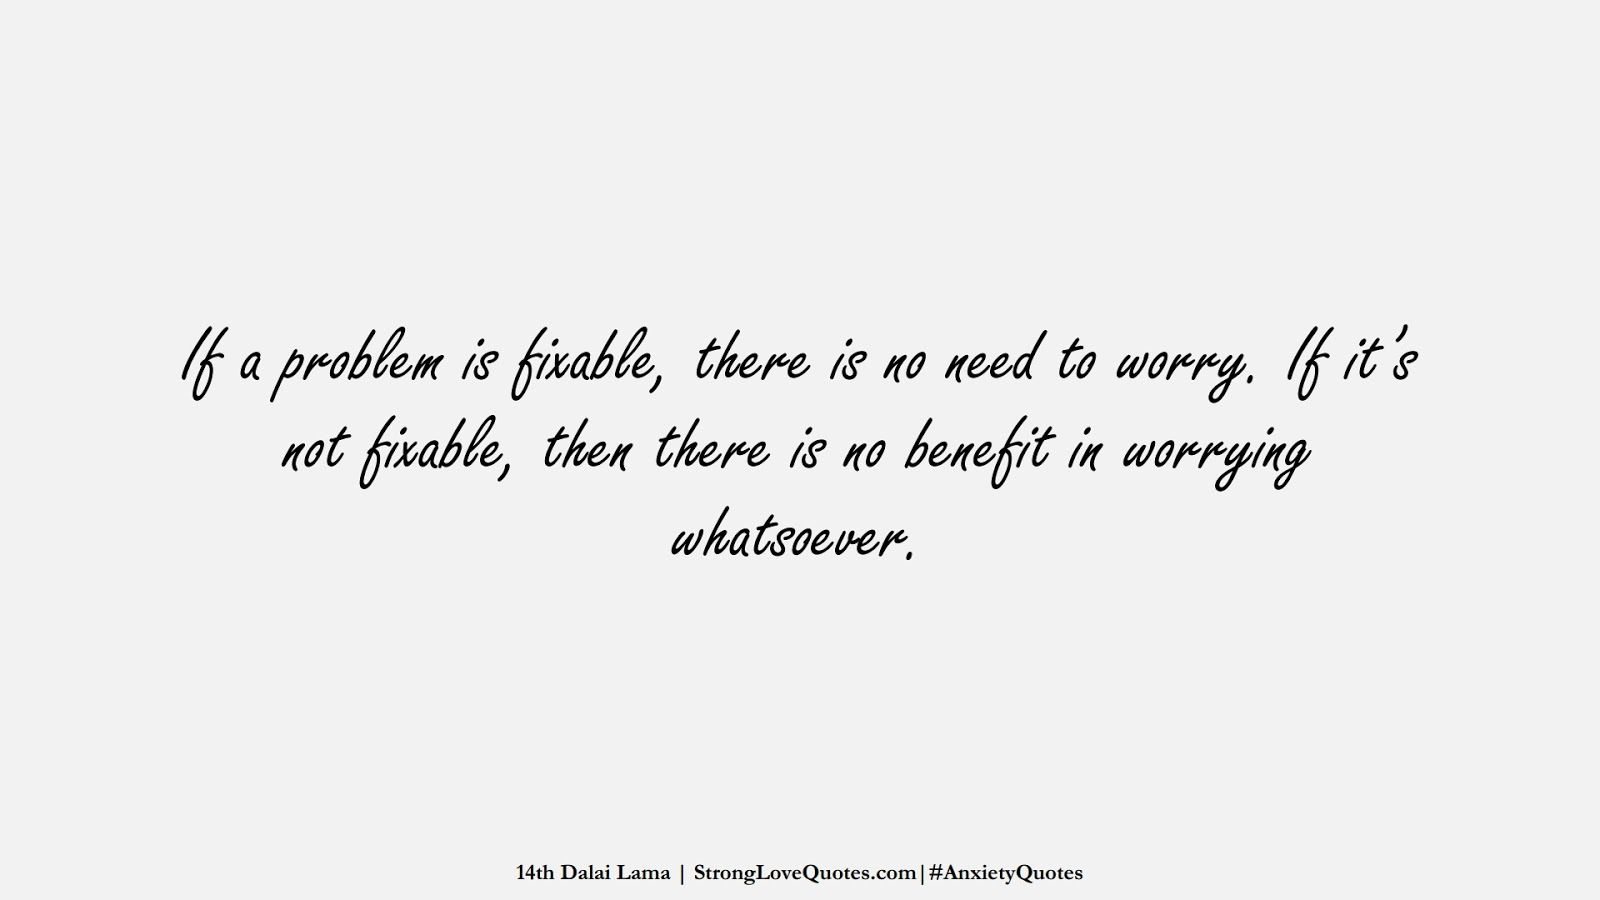 If a problem is fixable, there is no need to worry. If it's not fixable, then there is no benefit in worrying whatsoever. (14th Dalai Lama);  #AnxietyQuotes